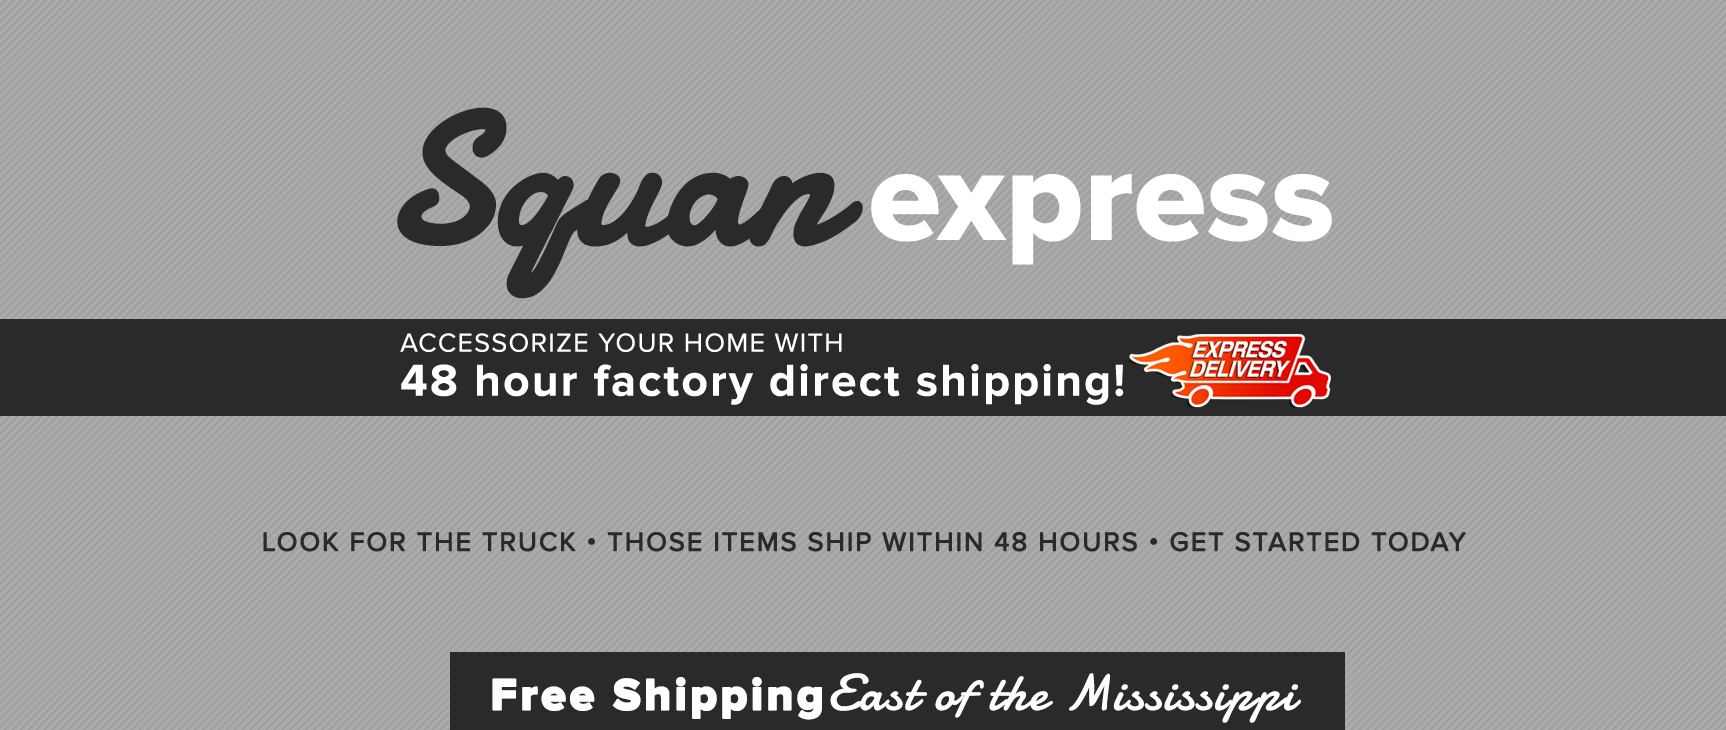 Squan Furniture Express Delivery